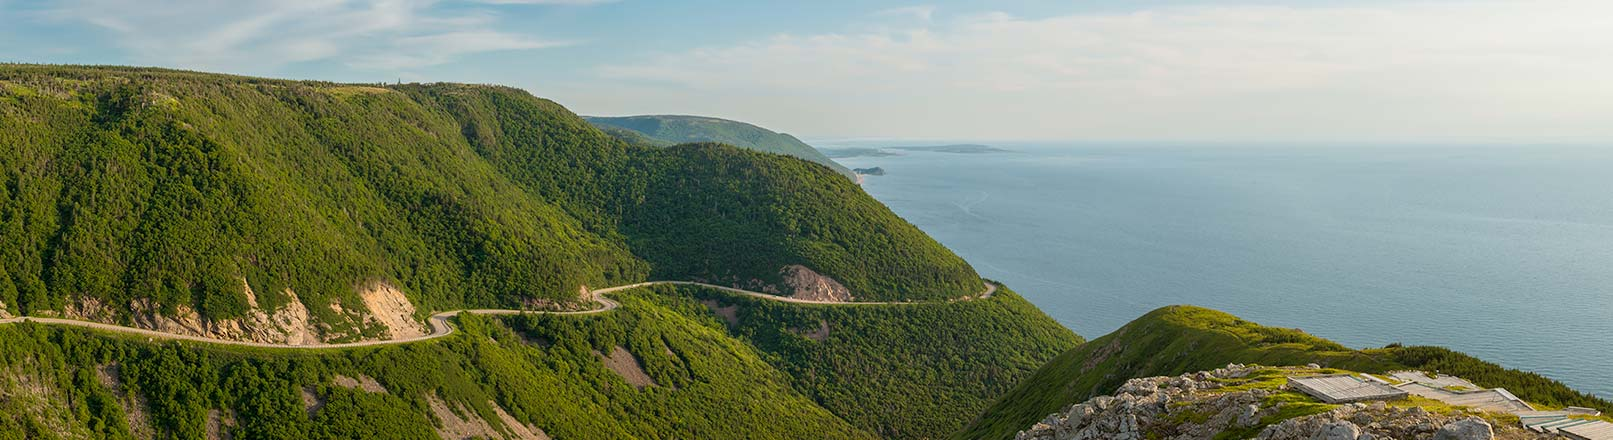 Tapisseries Chefs-d'oeuvre - Cabot Trail - Materpiece Tapestries